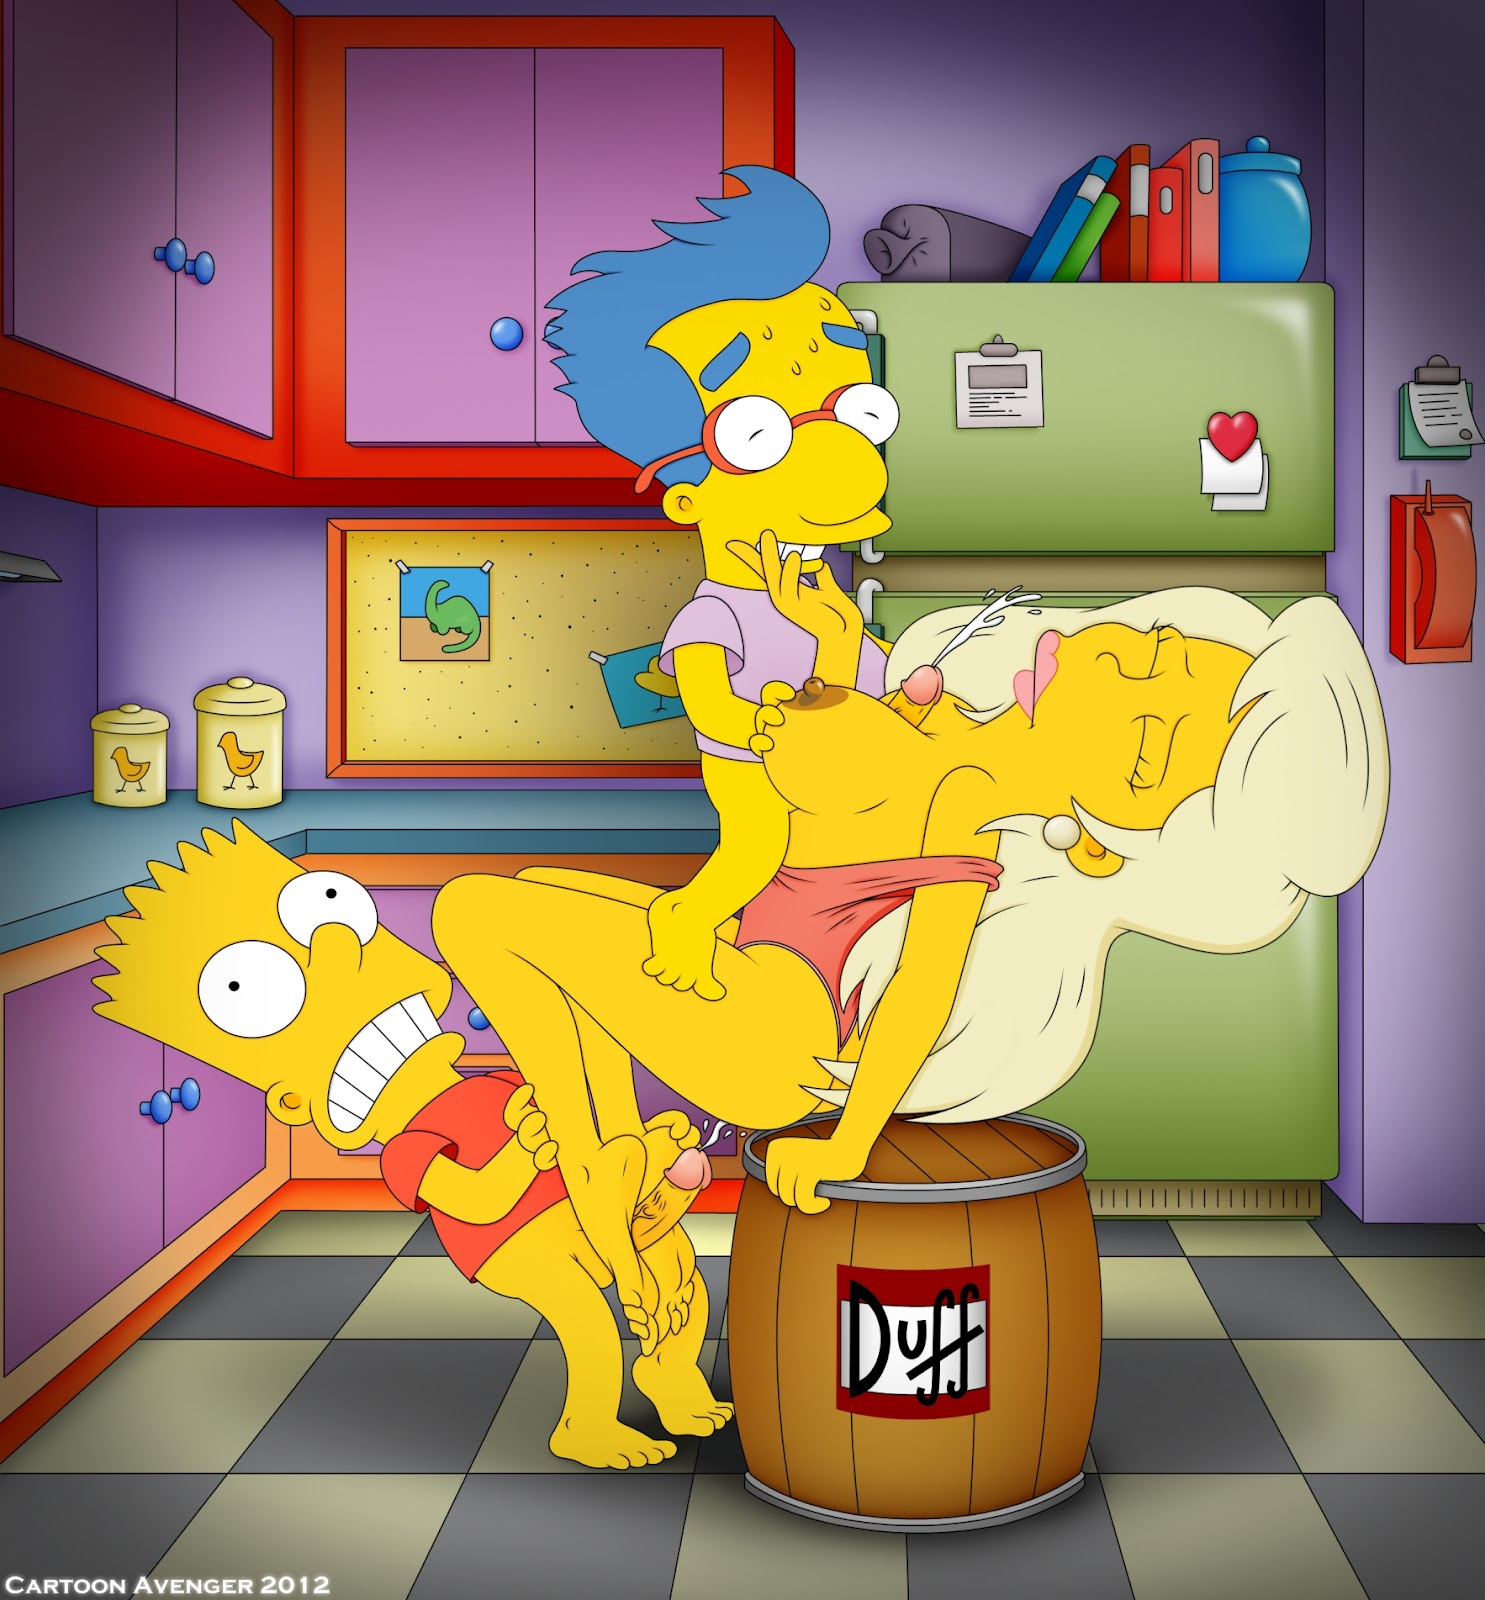 shauna and porn Simpsons bart